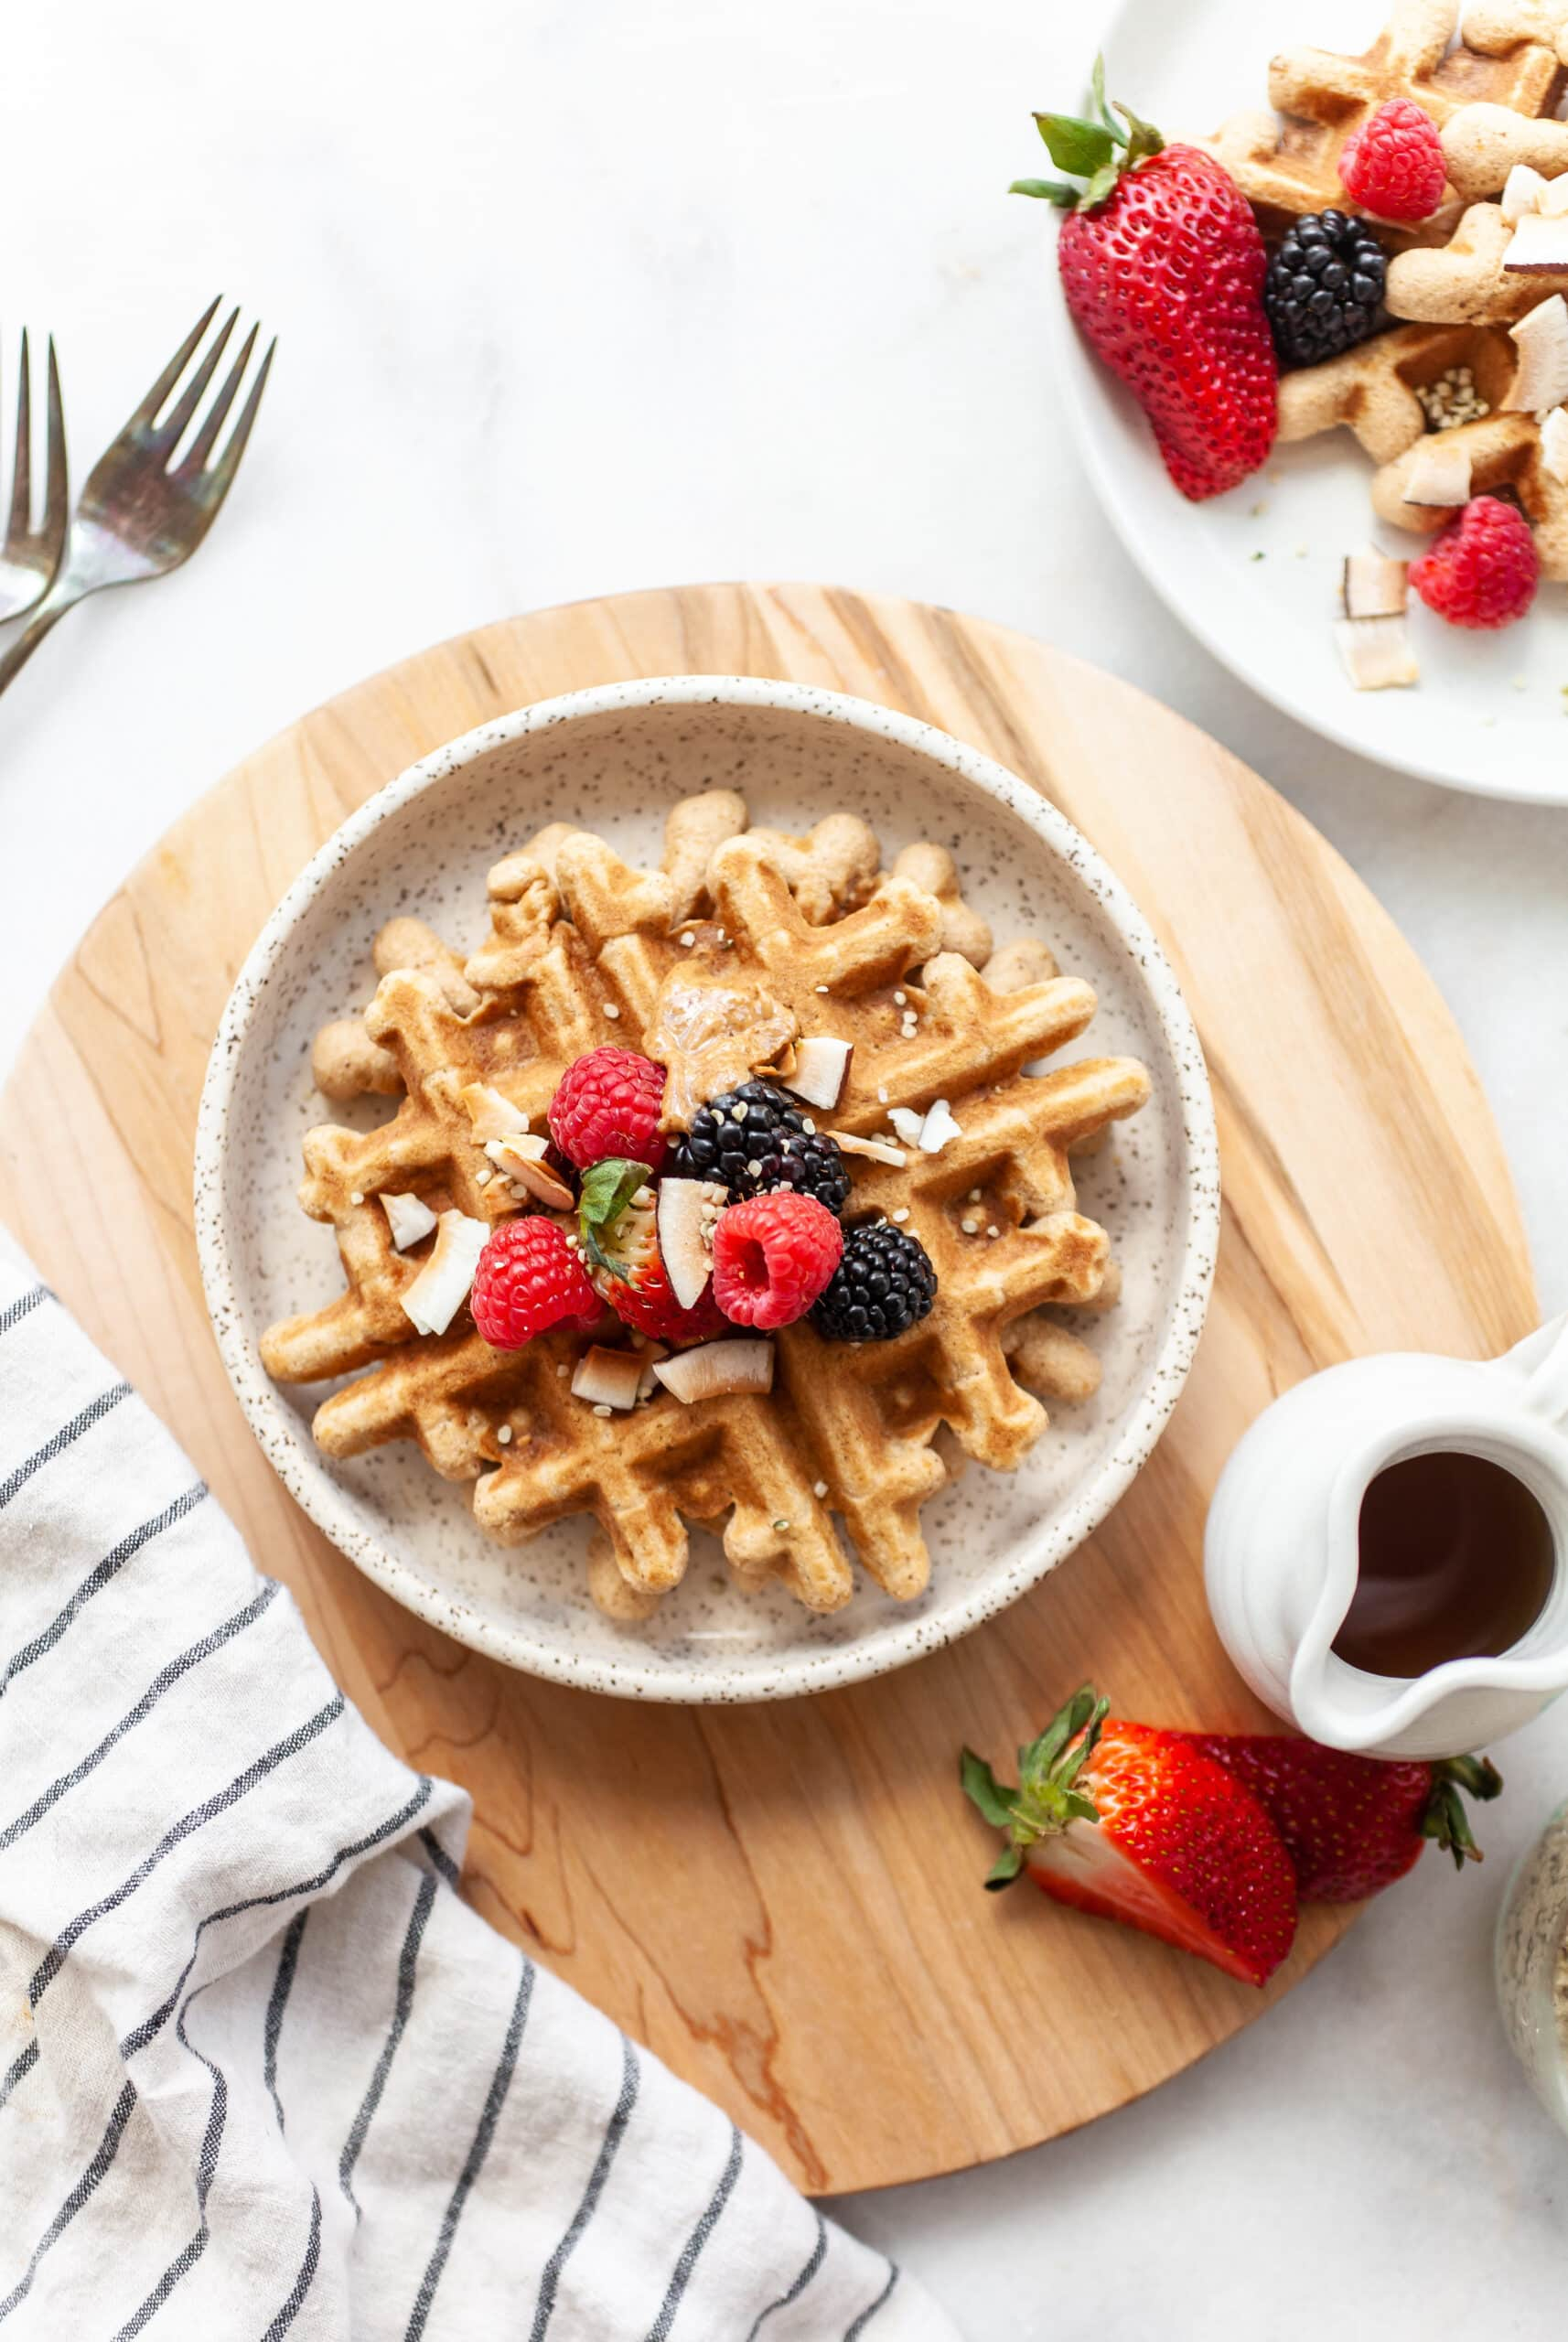 plate with Easy Coconut Flour Waffles on a wooden round board with maple syrup on the side